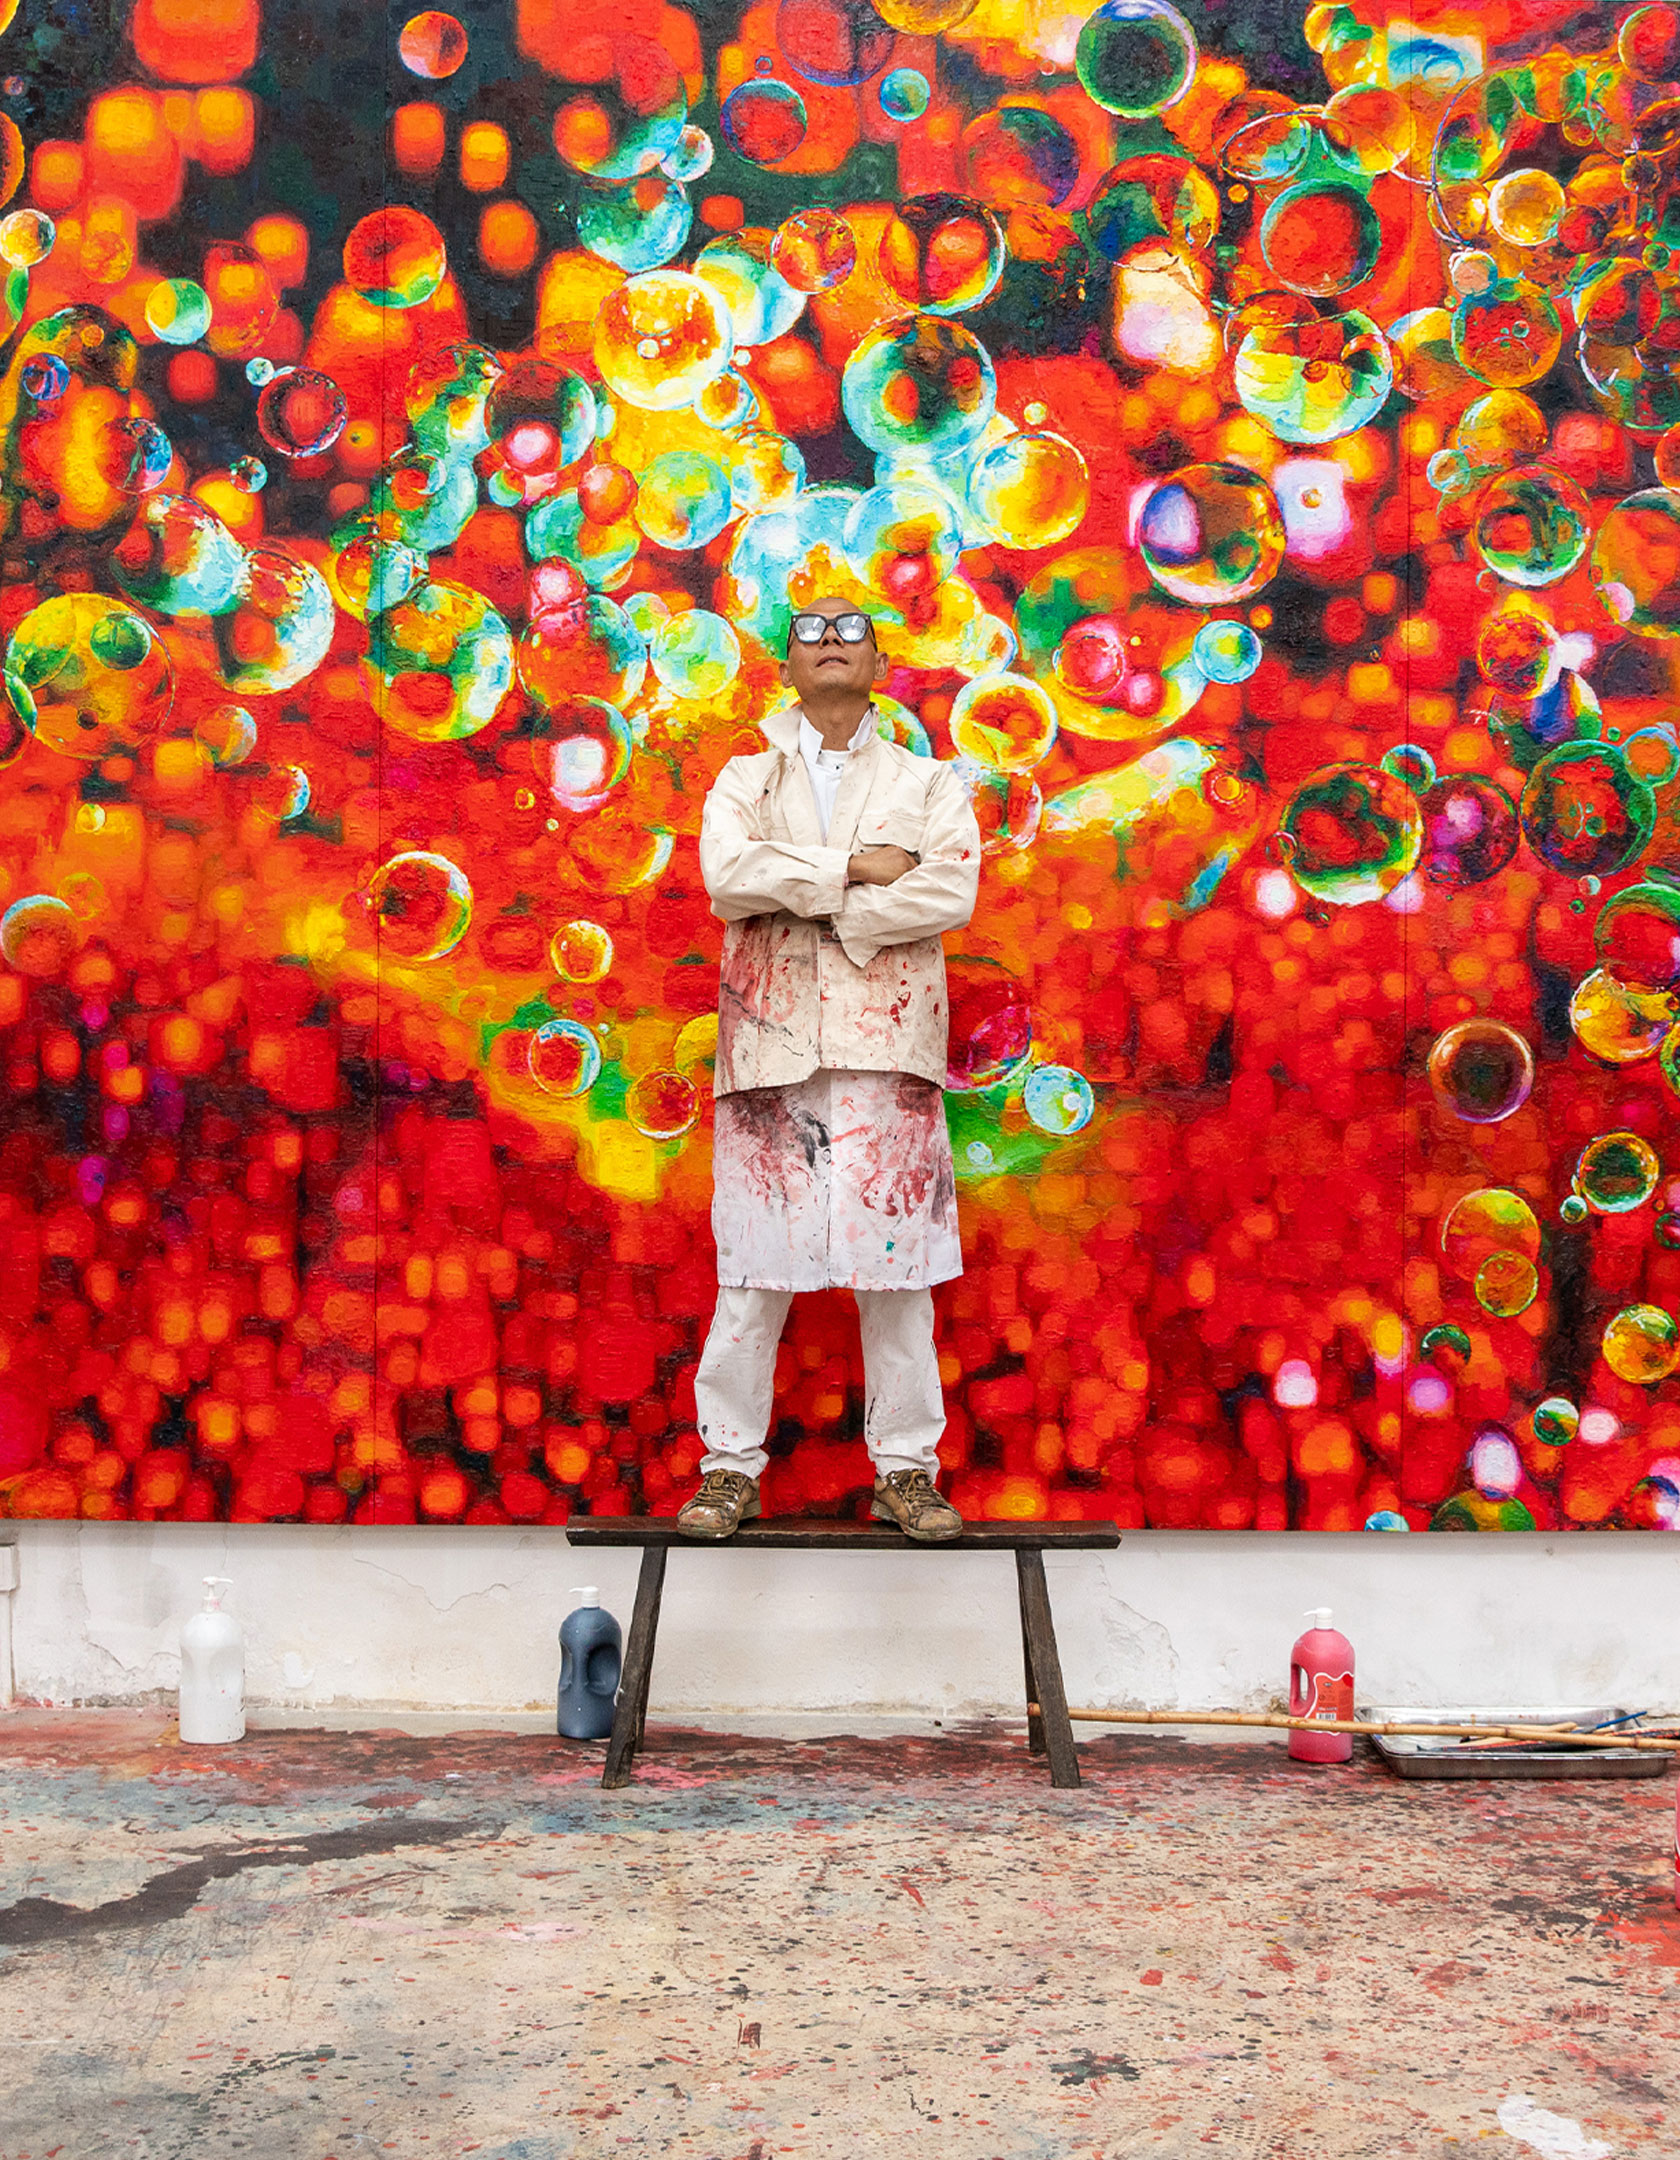 CELEBRATE CHINESE NEW YEAR WITH ZHANG HUAN